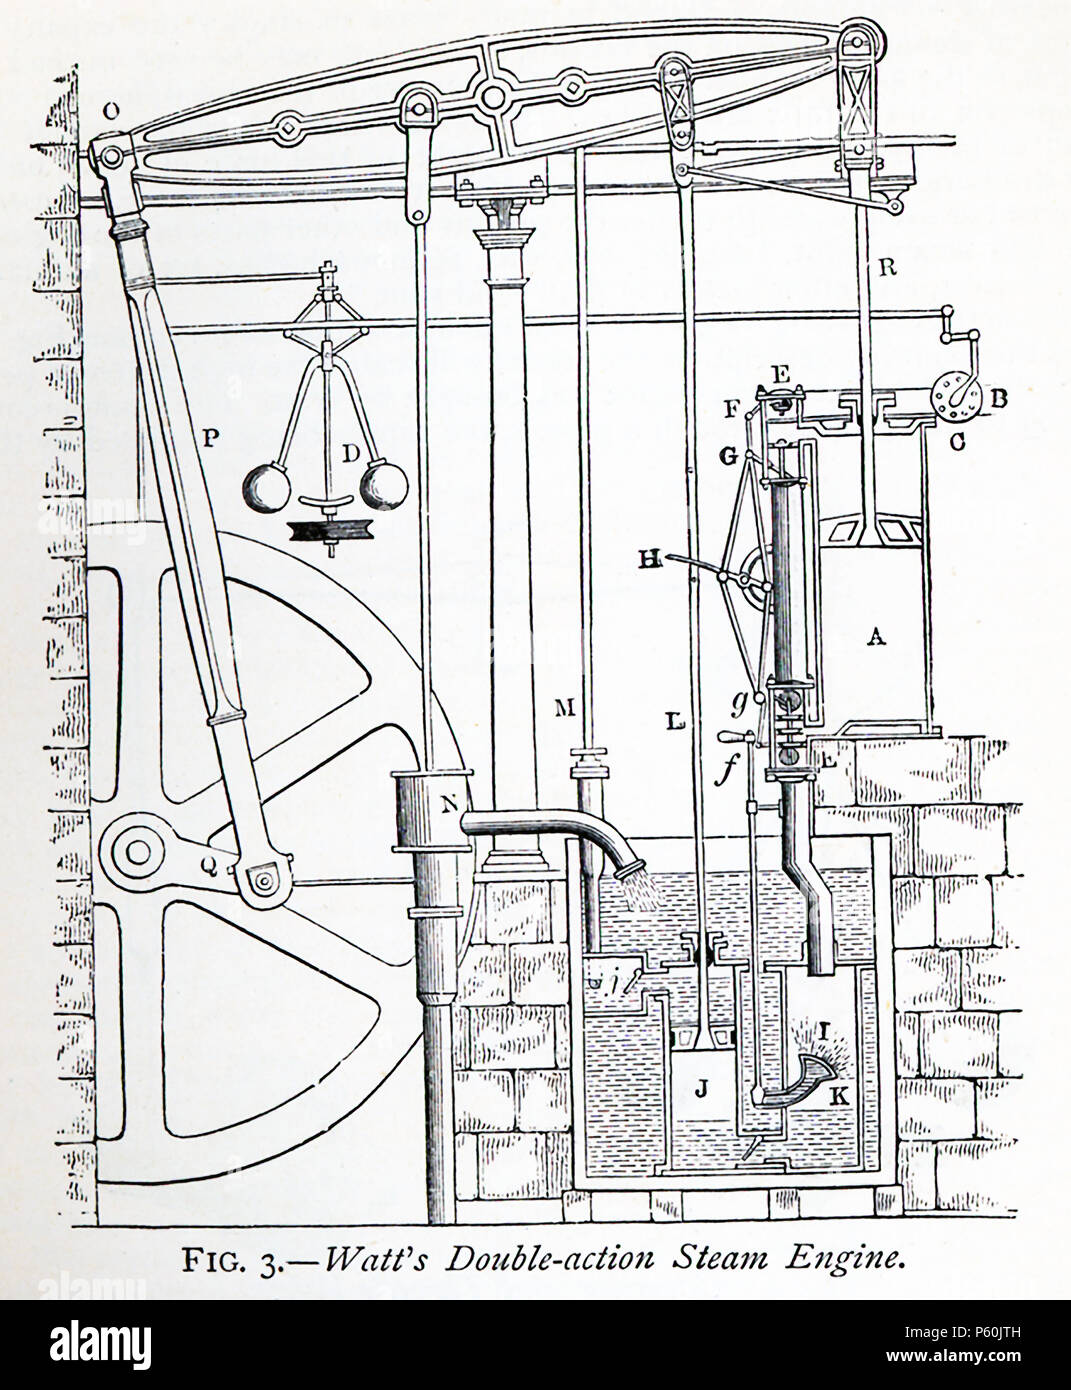 hight resolution of this 870s illustration shows watt s double action steam engine james watt was a scottish